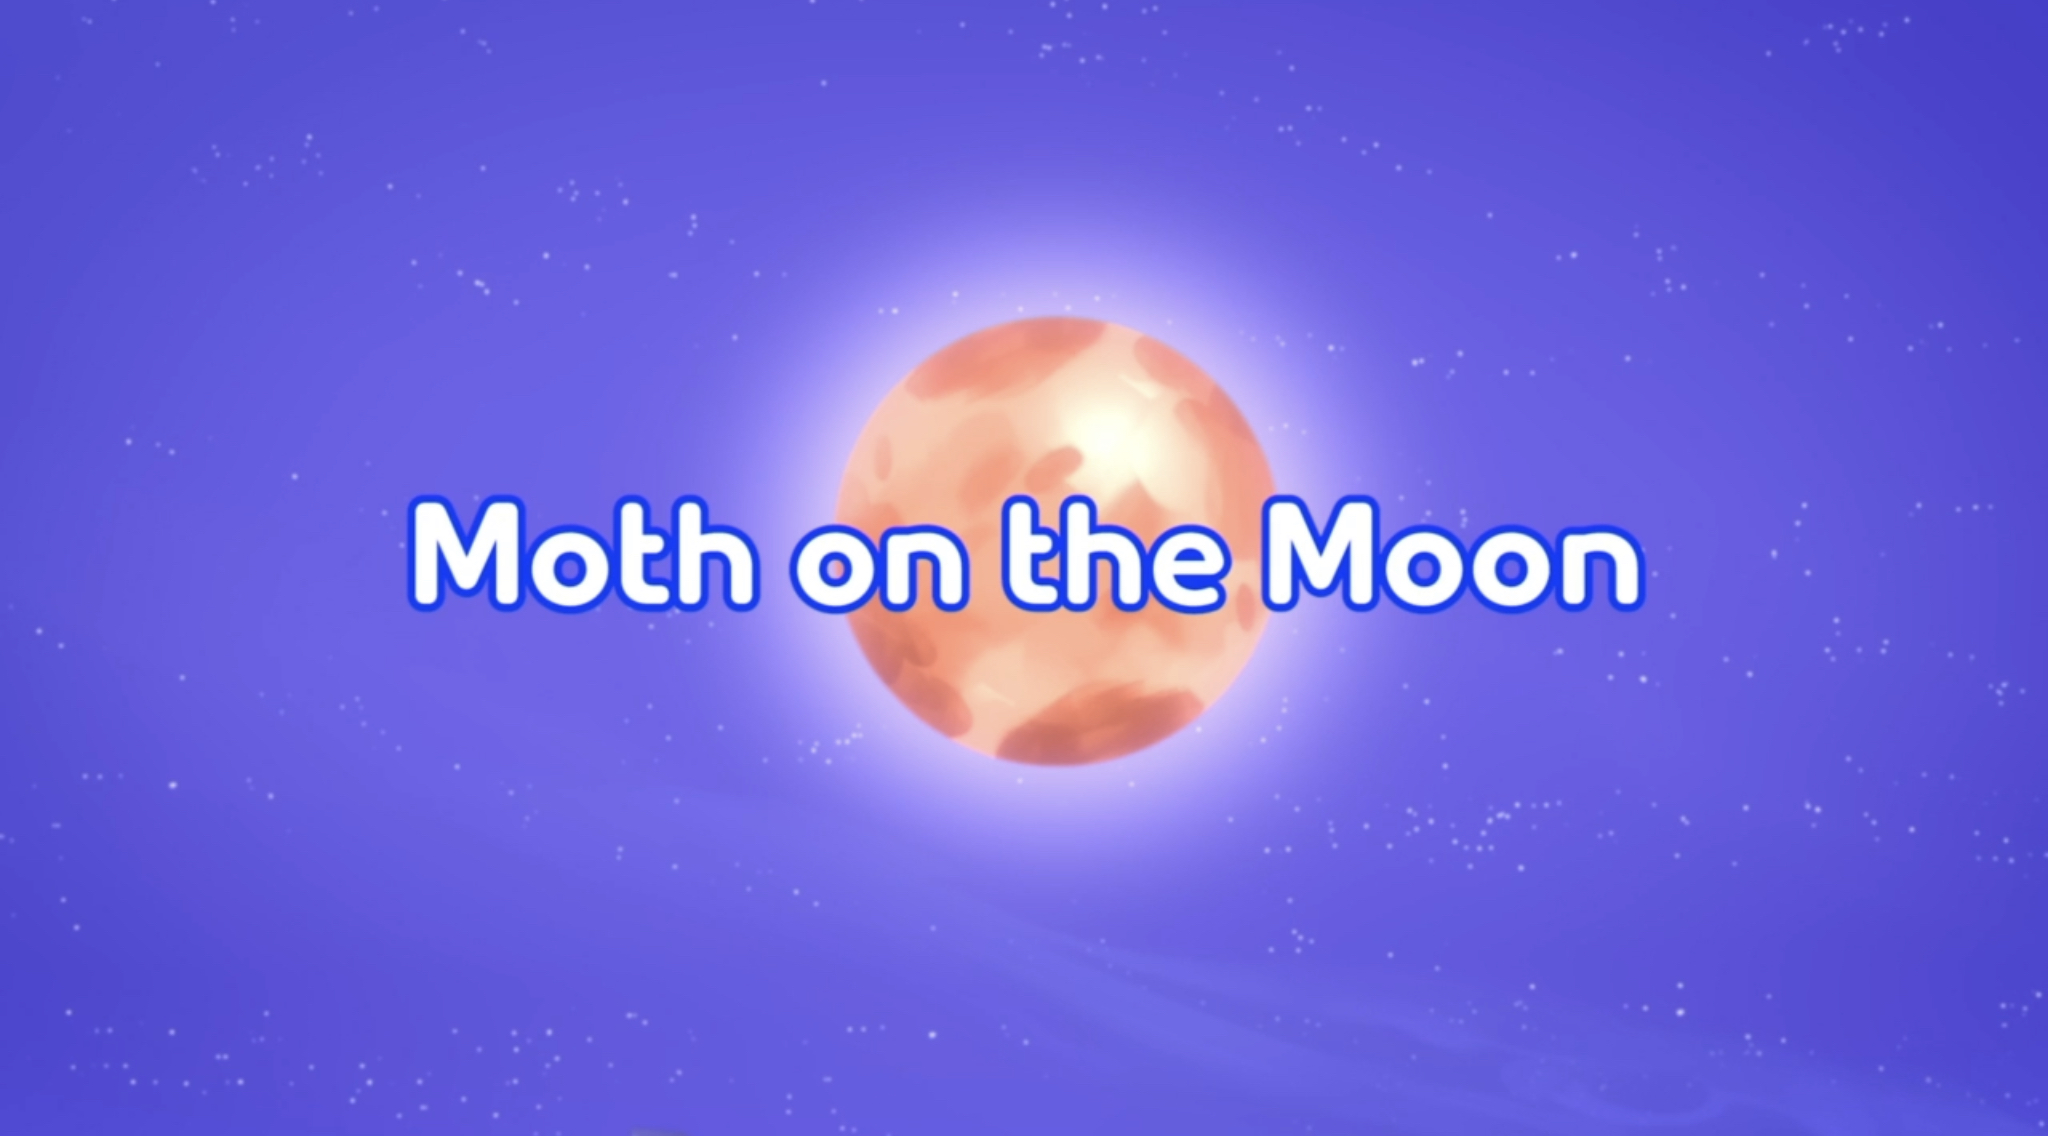 Moth on the Moon